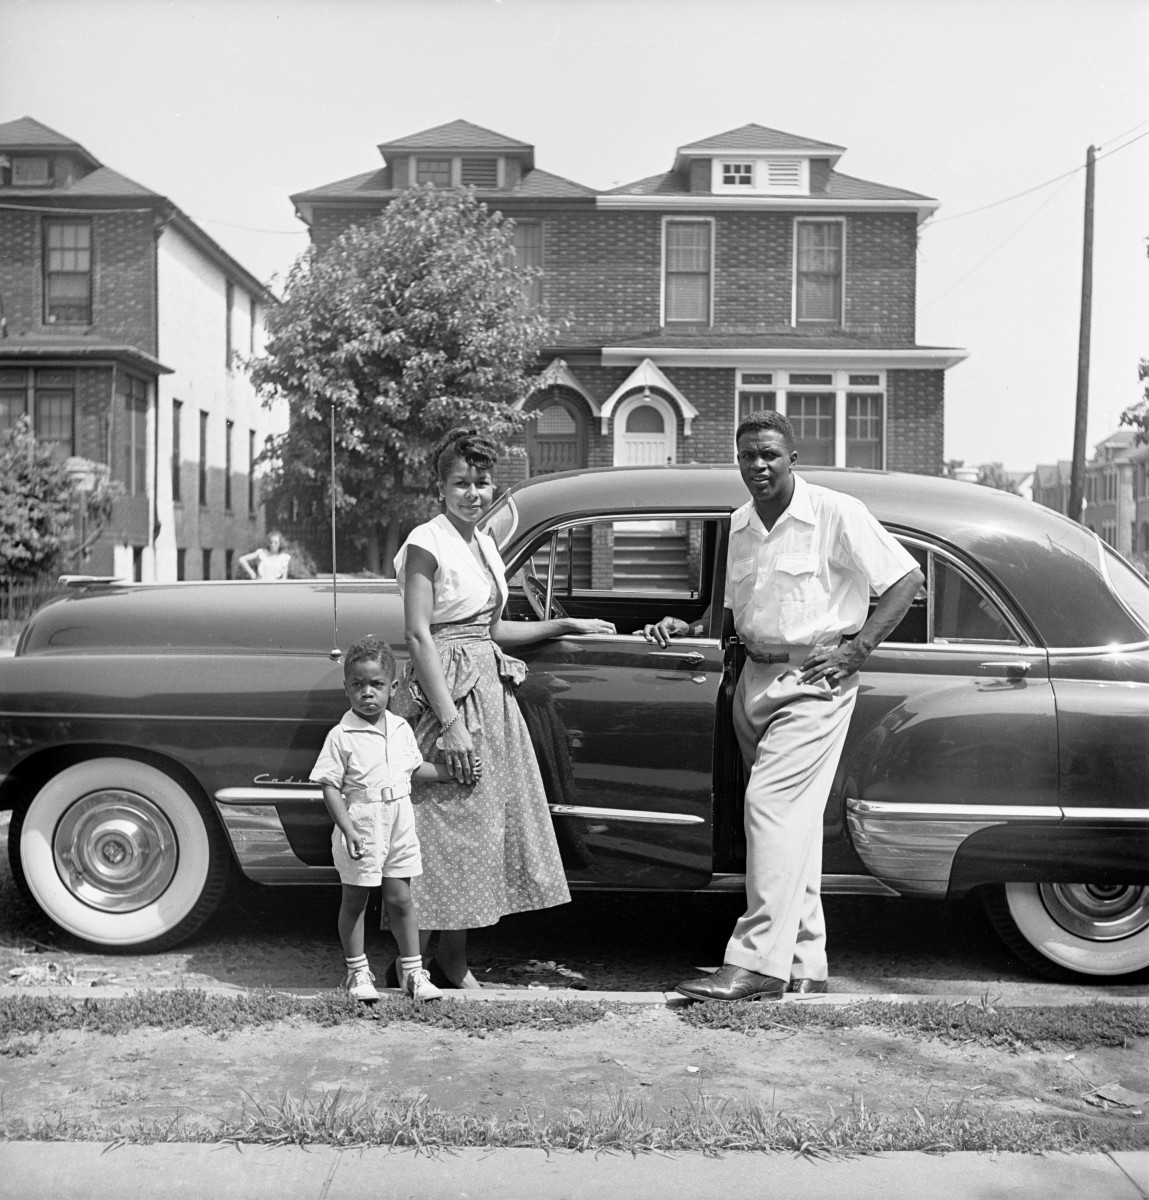 Jackie Robinson, his wife Rachel and their son Jackie Jr. posing by their car in Brooklyn, New York in July 1949.